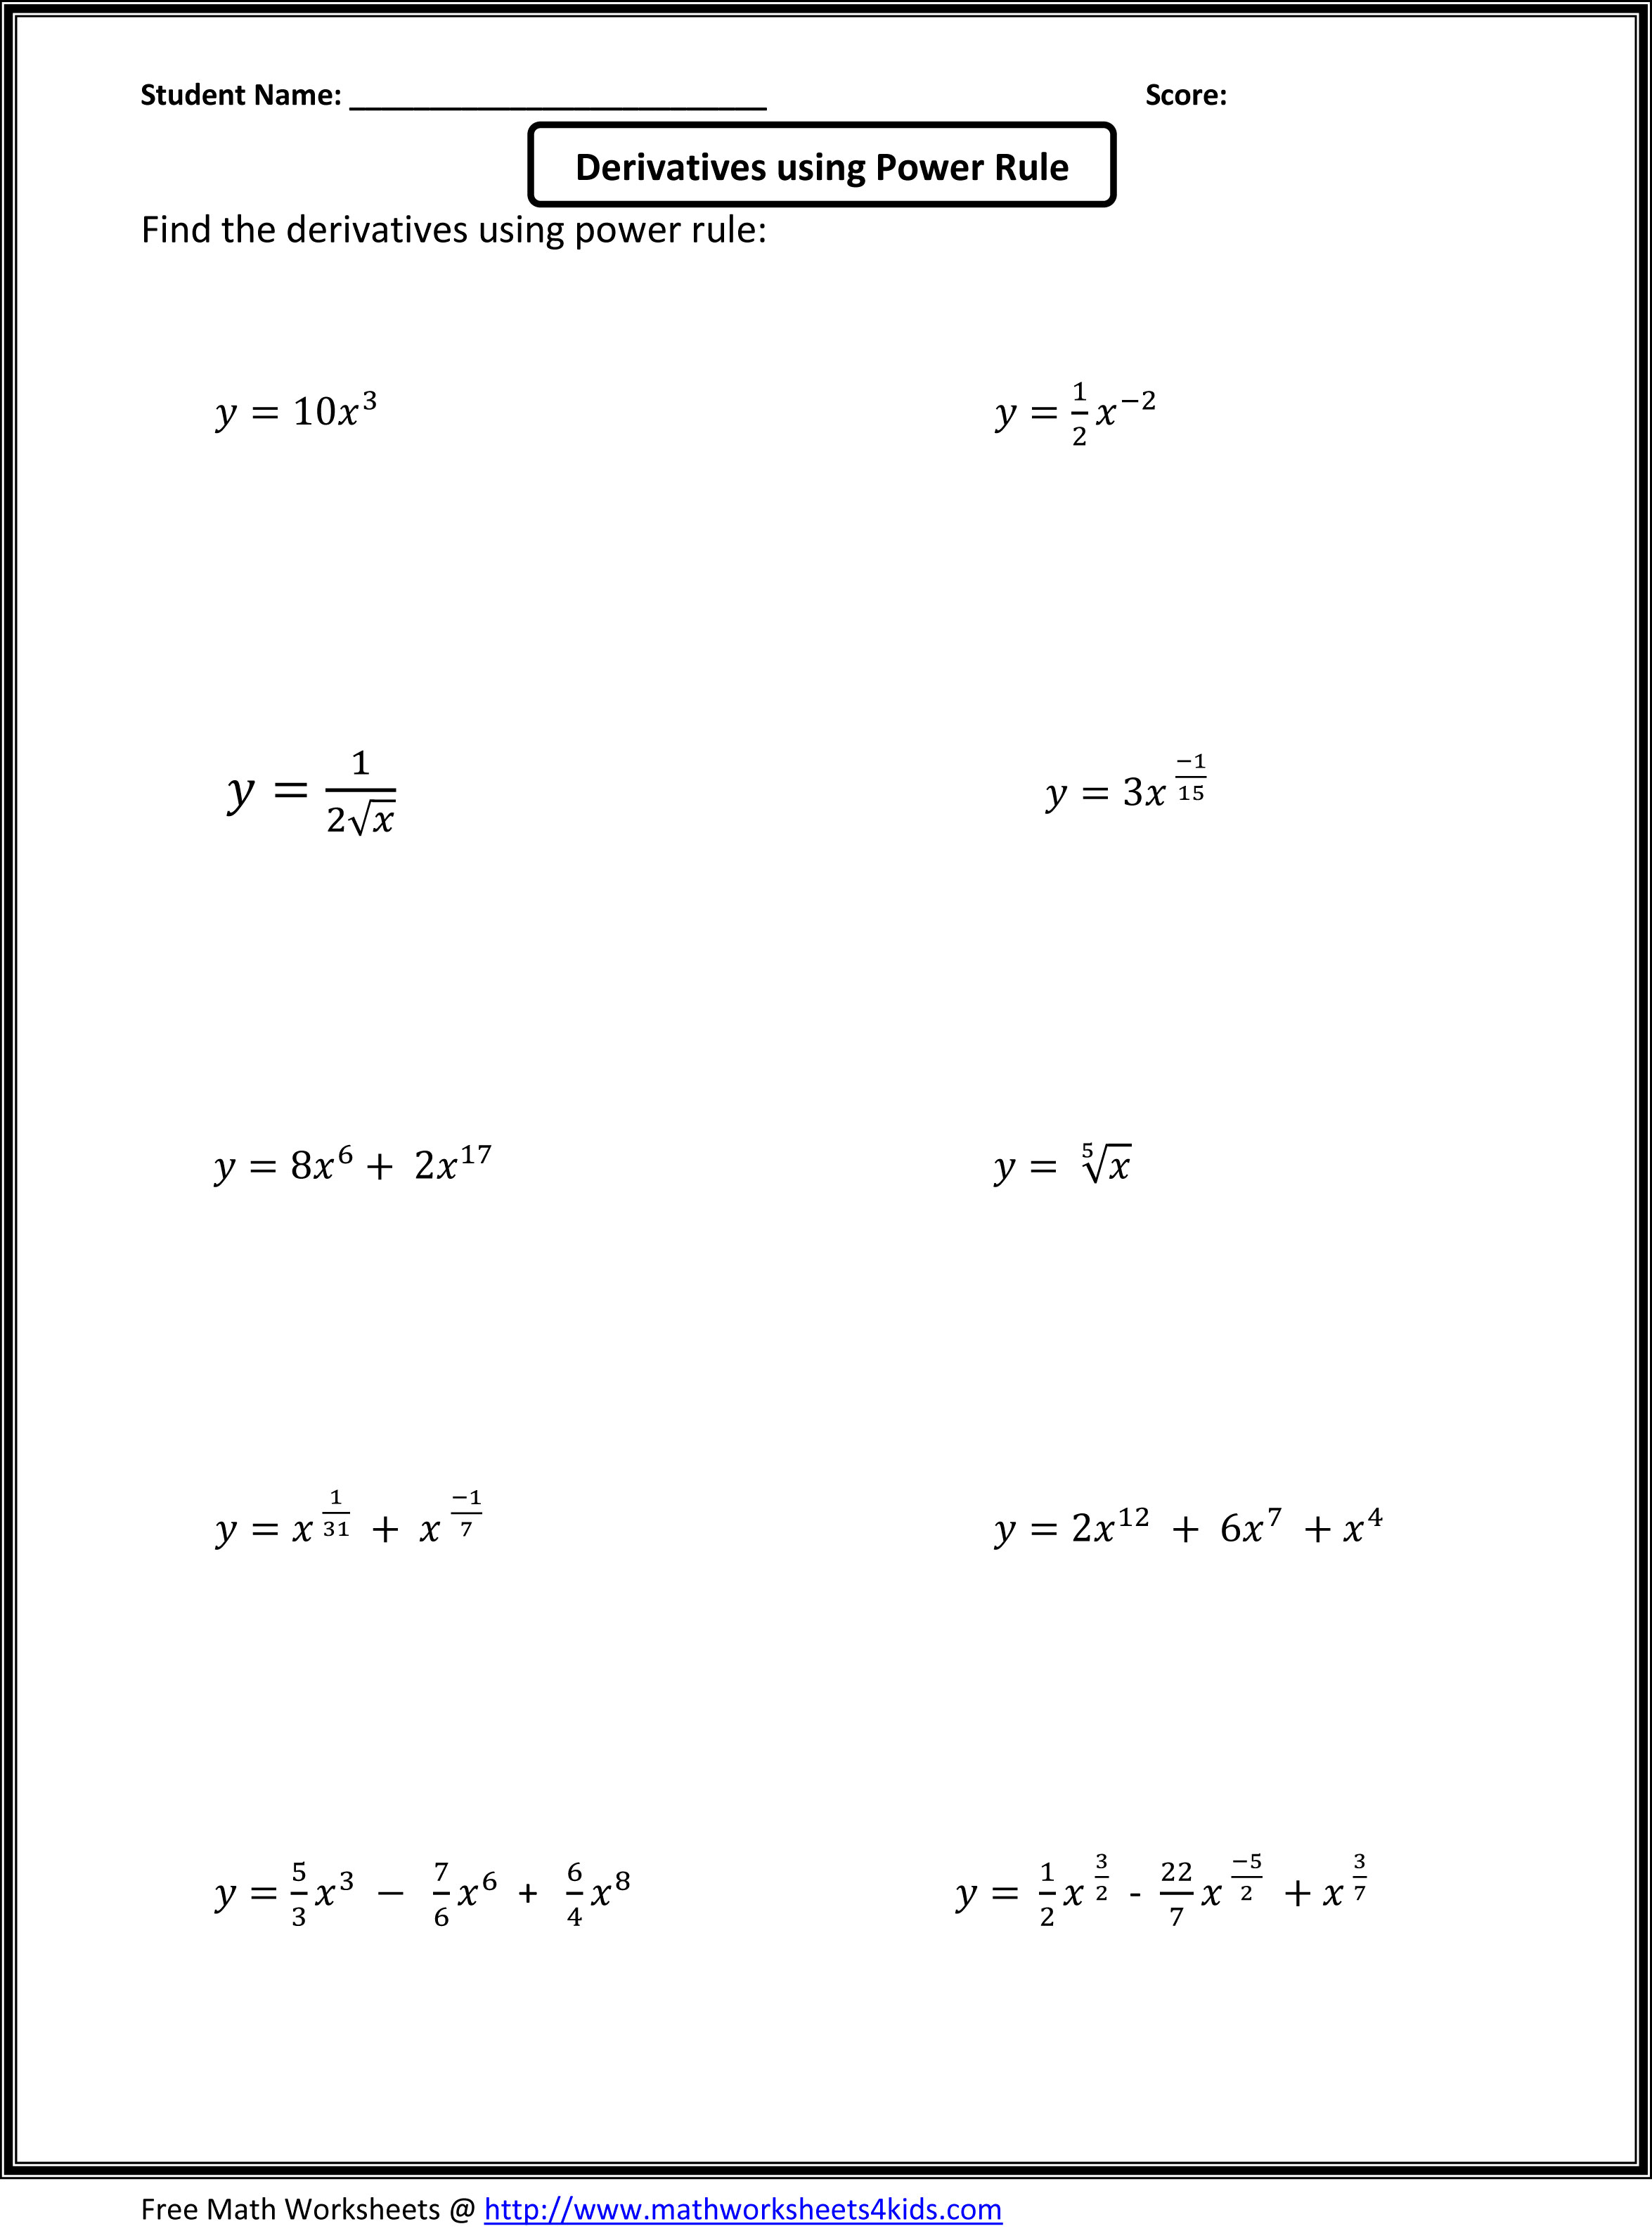 Derivatives Using Power Rule